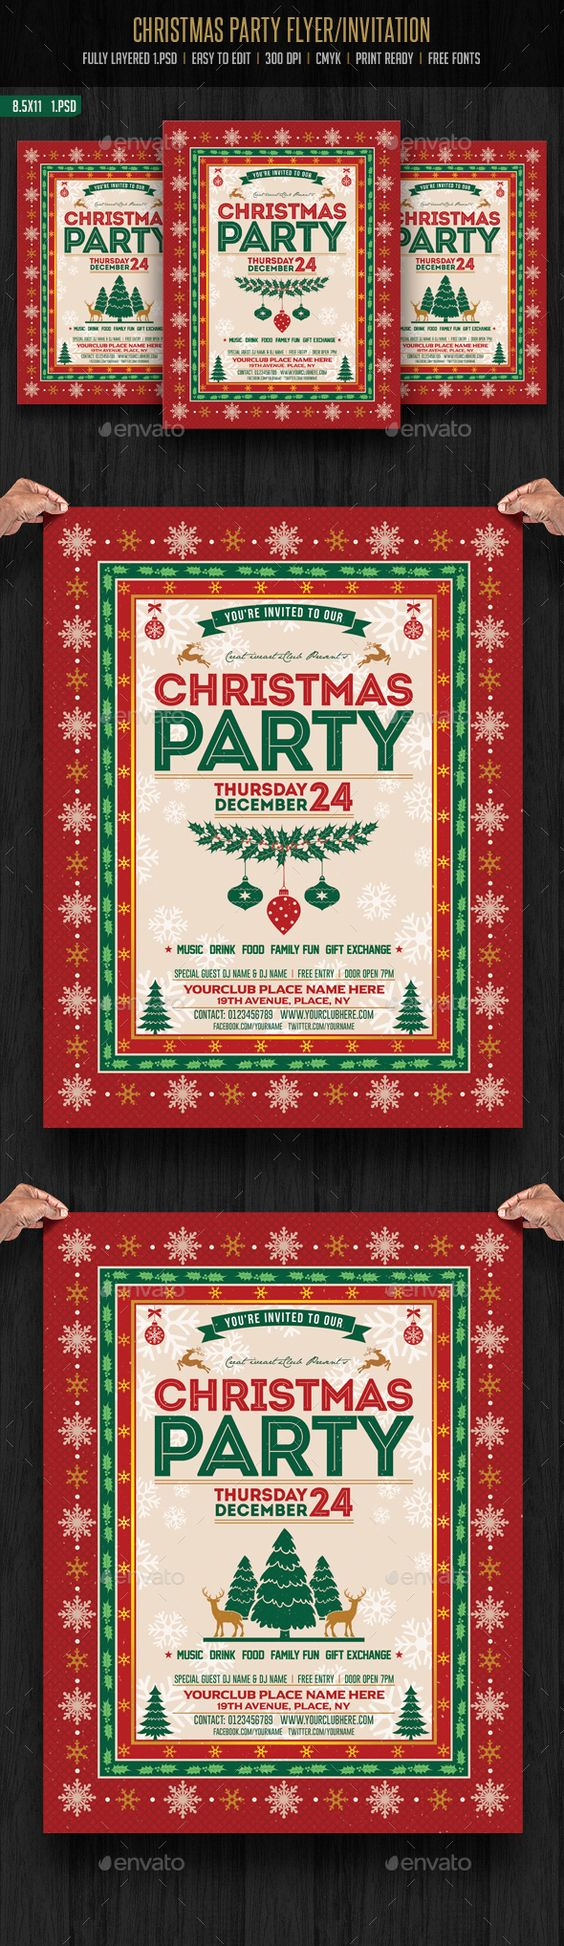 christmas parties seasons and design christmas party flyer invitation events flyers christmas newyears seasons